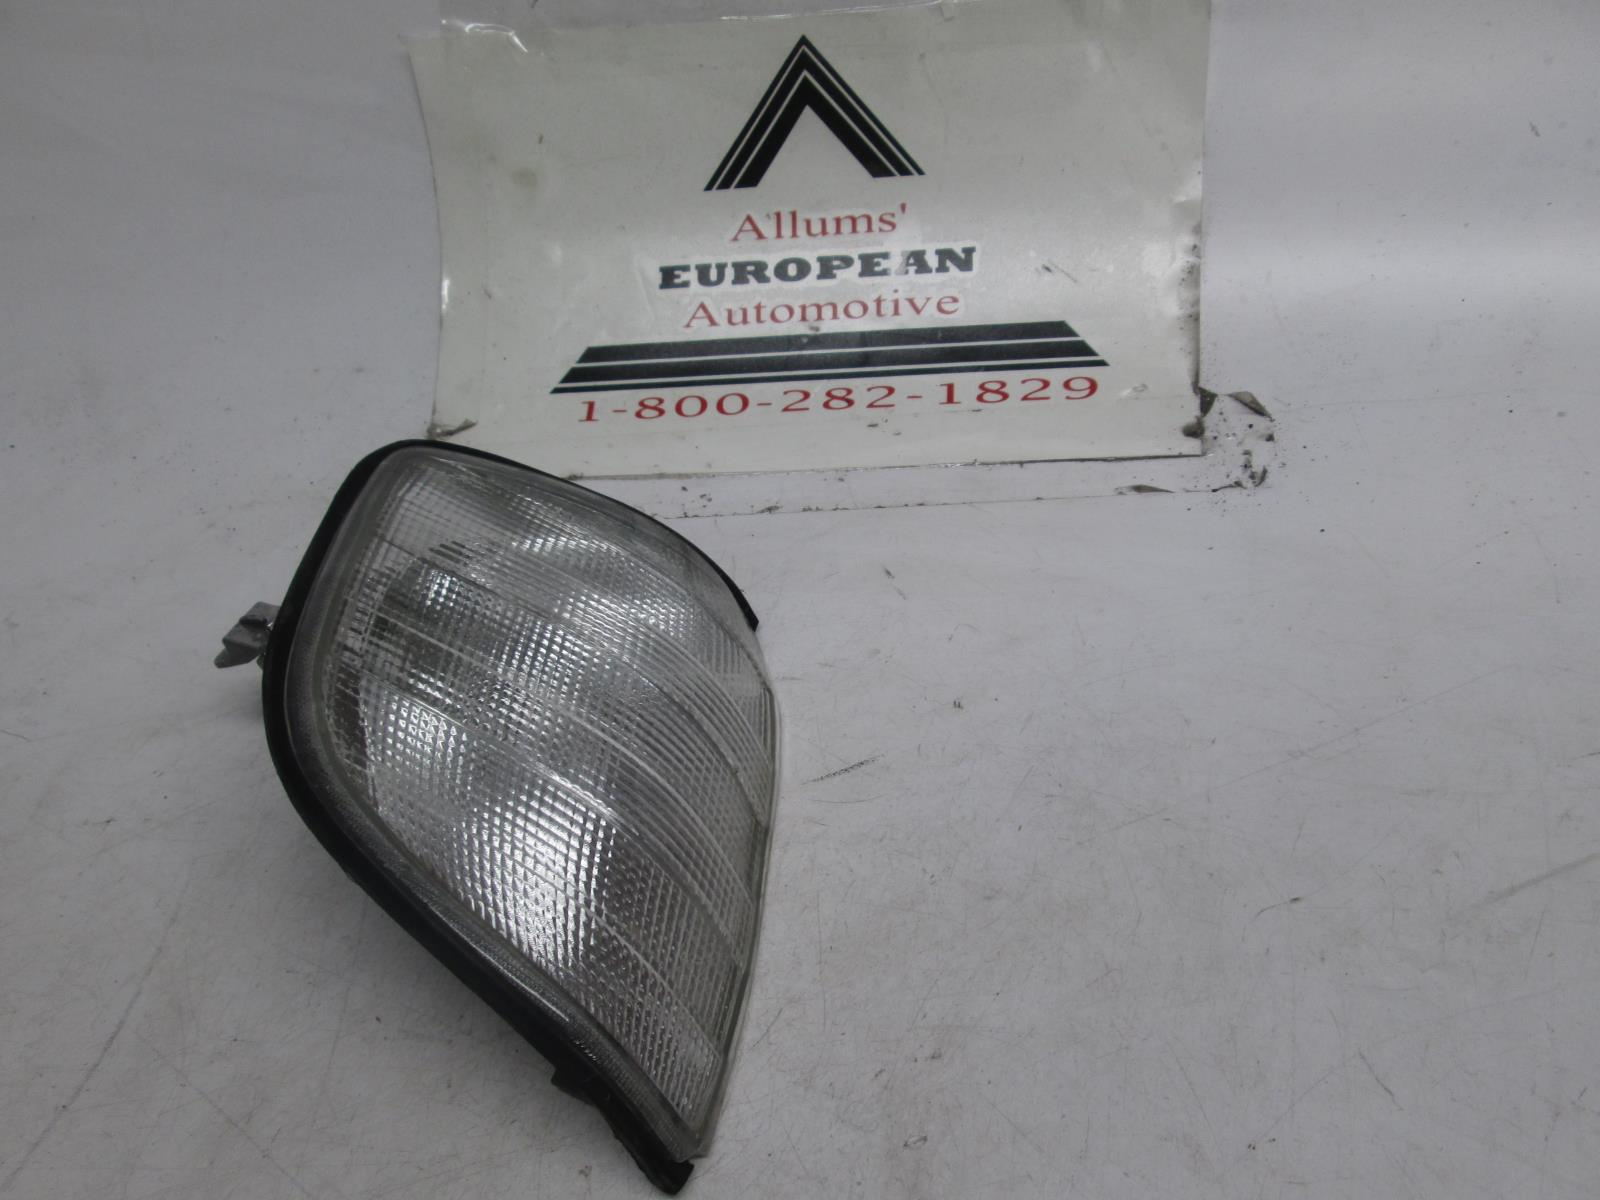 Mercedes W140 right front turn signal 95-99 1408260843